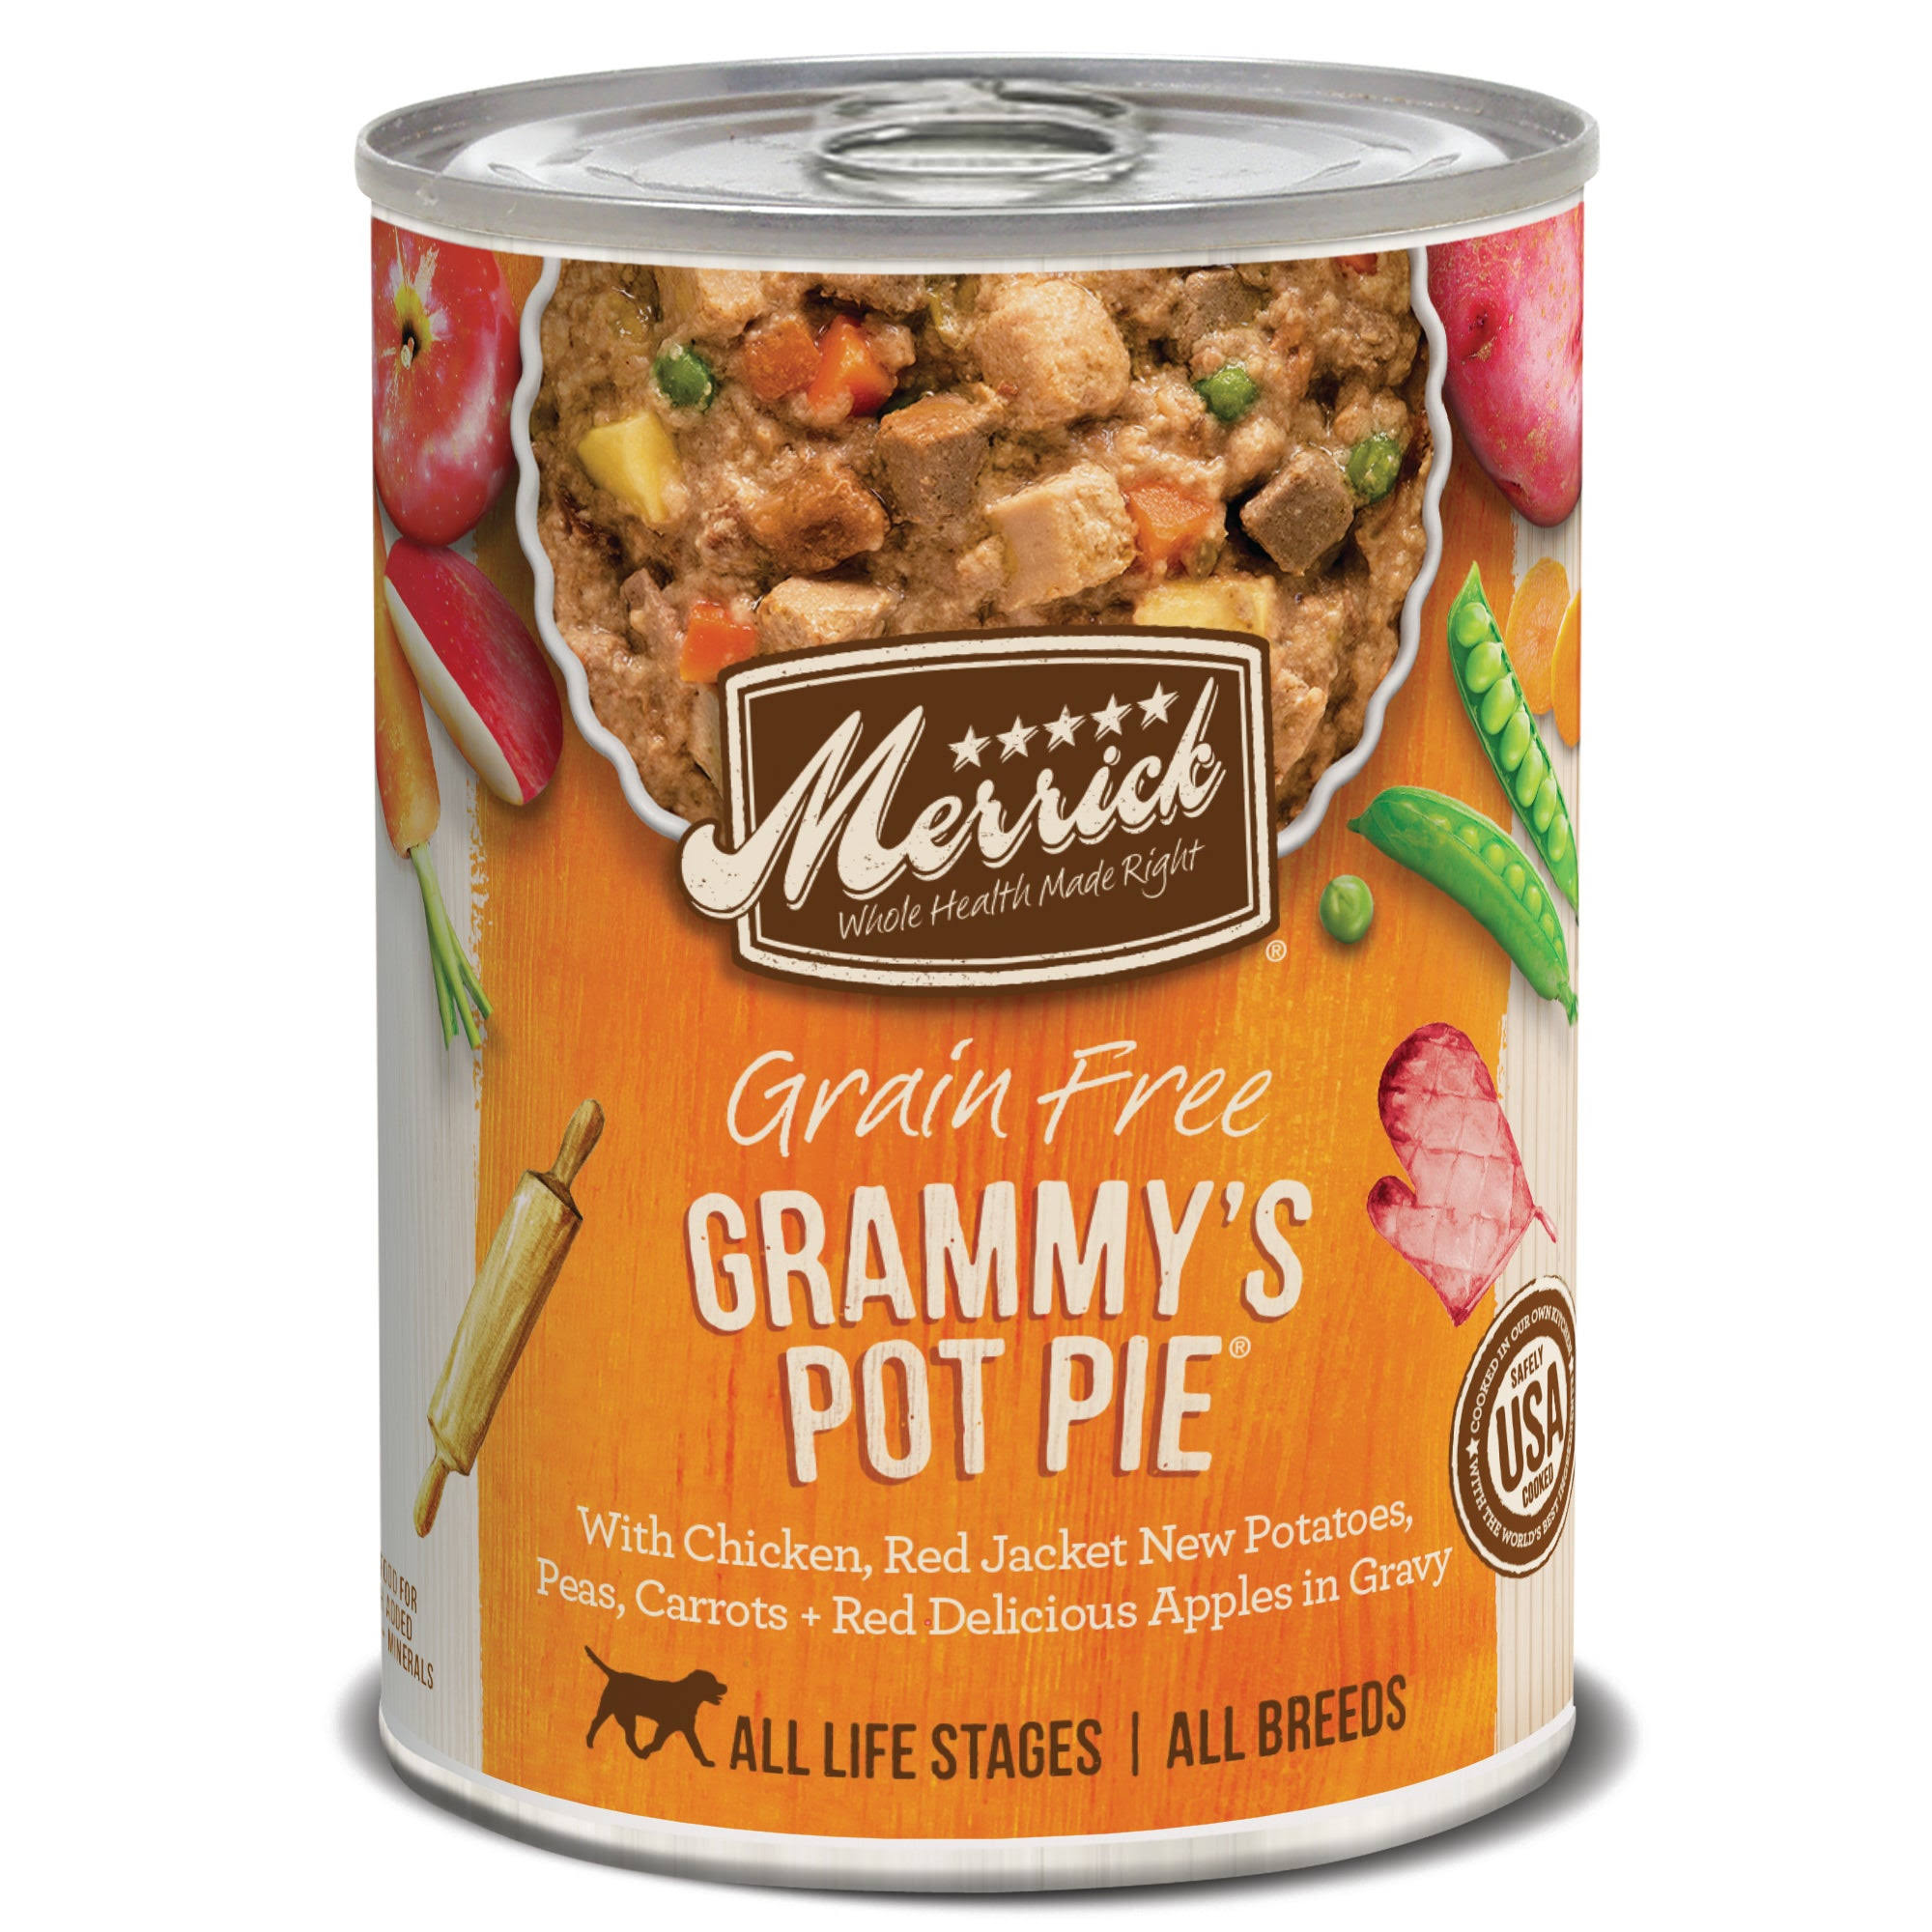 Merrick Grain-Free Grammy's Pot Pie Recipe Canned Dog Food 13.2oz